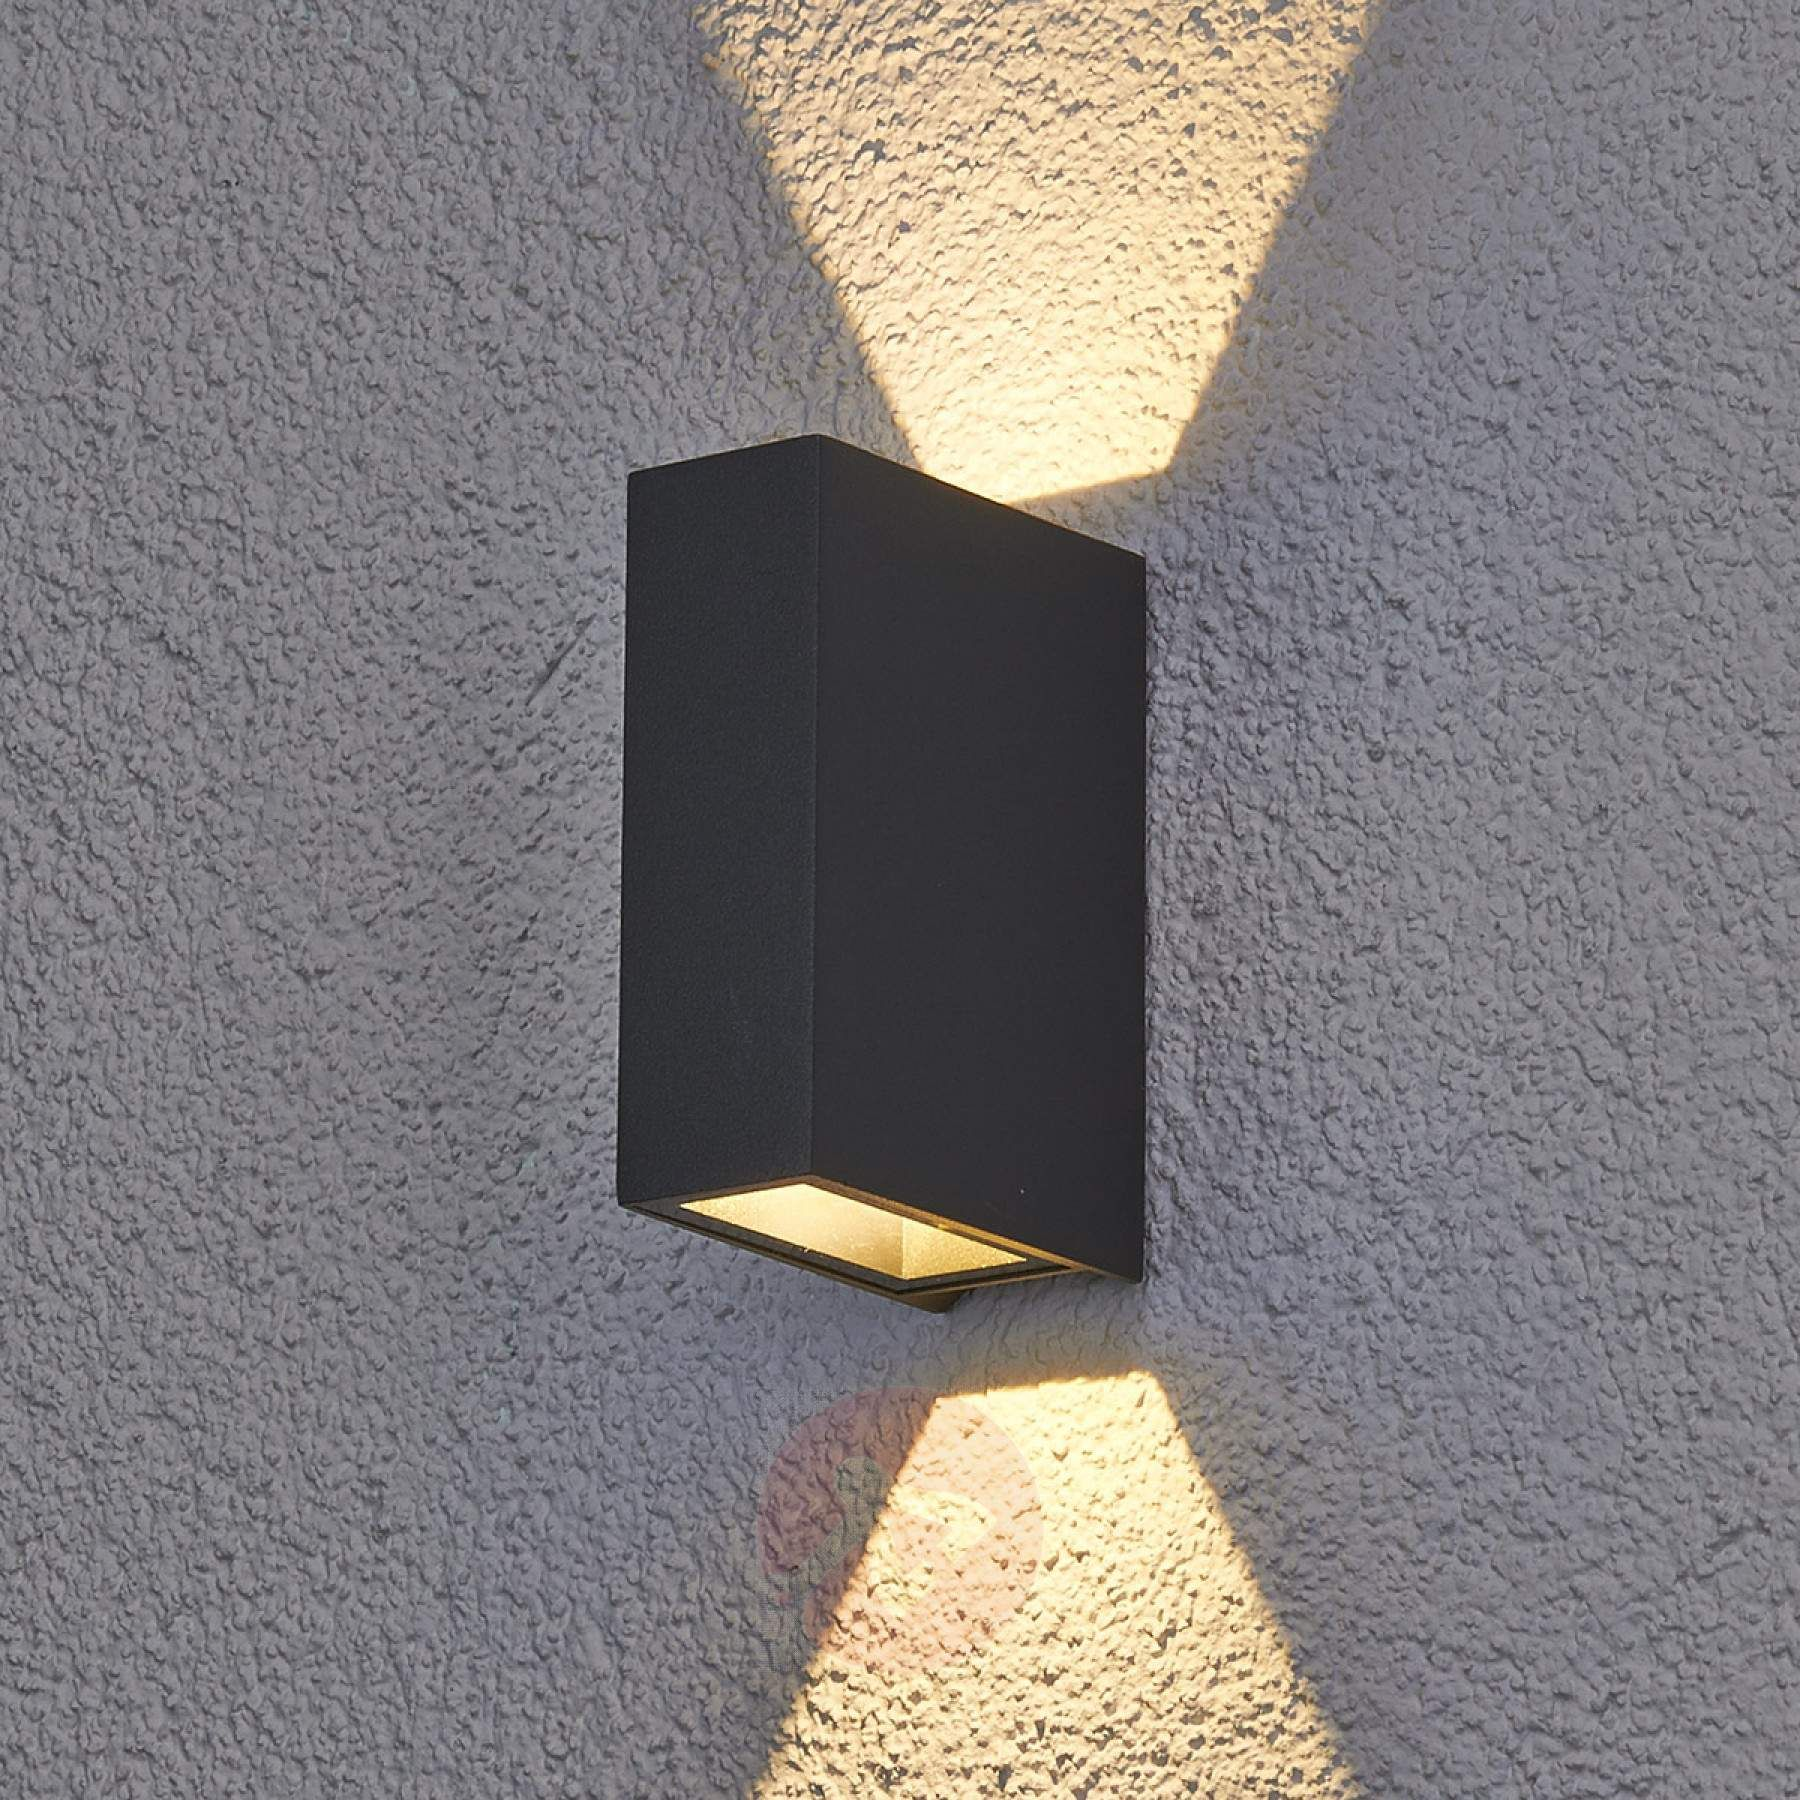 Maisie Led Outdoor Wall Light Made Of Aluminium Lights Co Uk In 2020 Led Outdoor Wall Lights Wall Lights Outdoor Wall Lighting